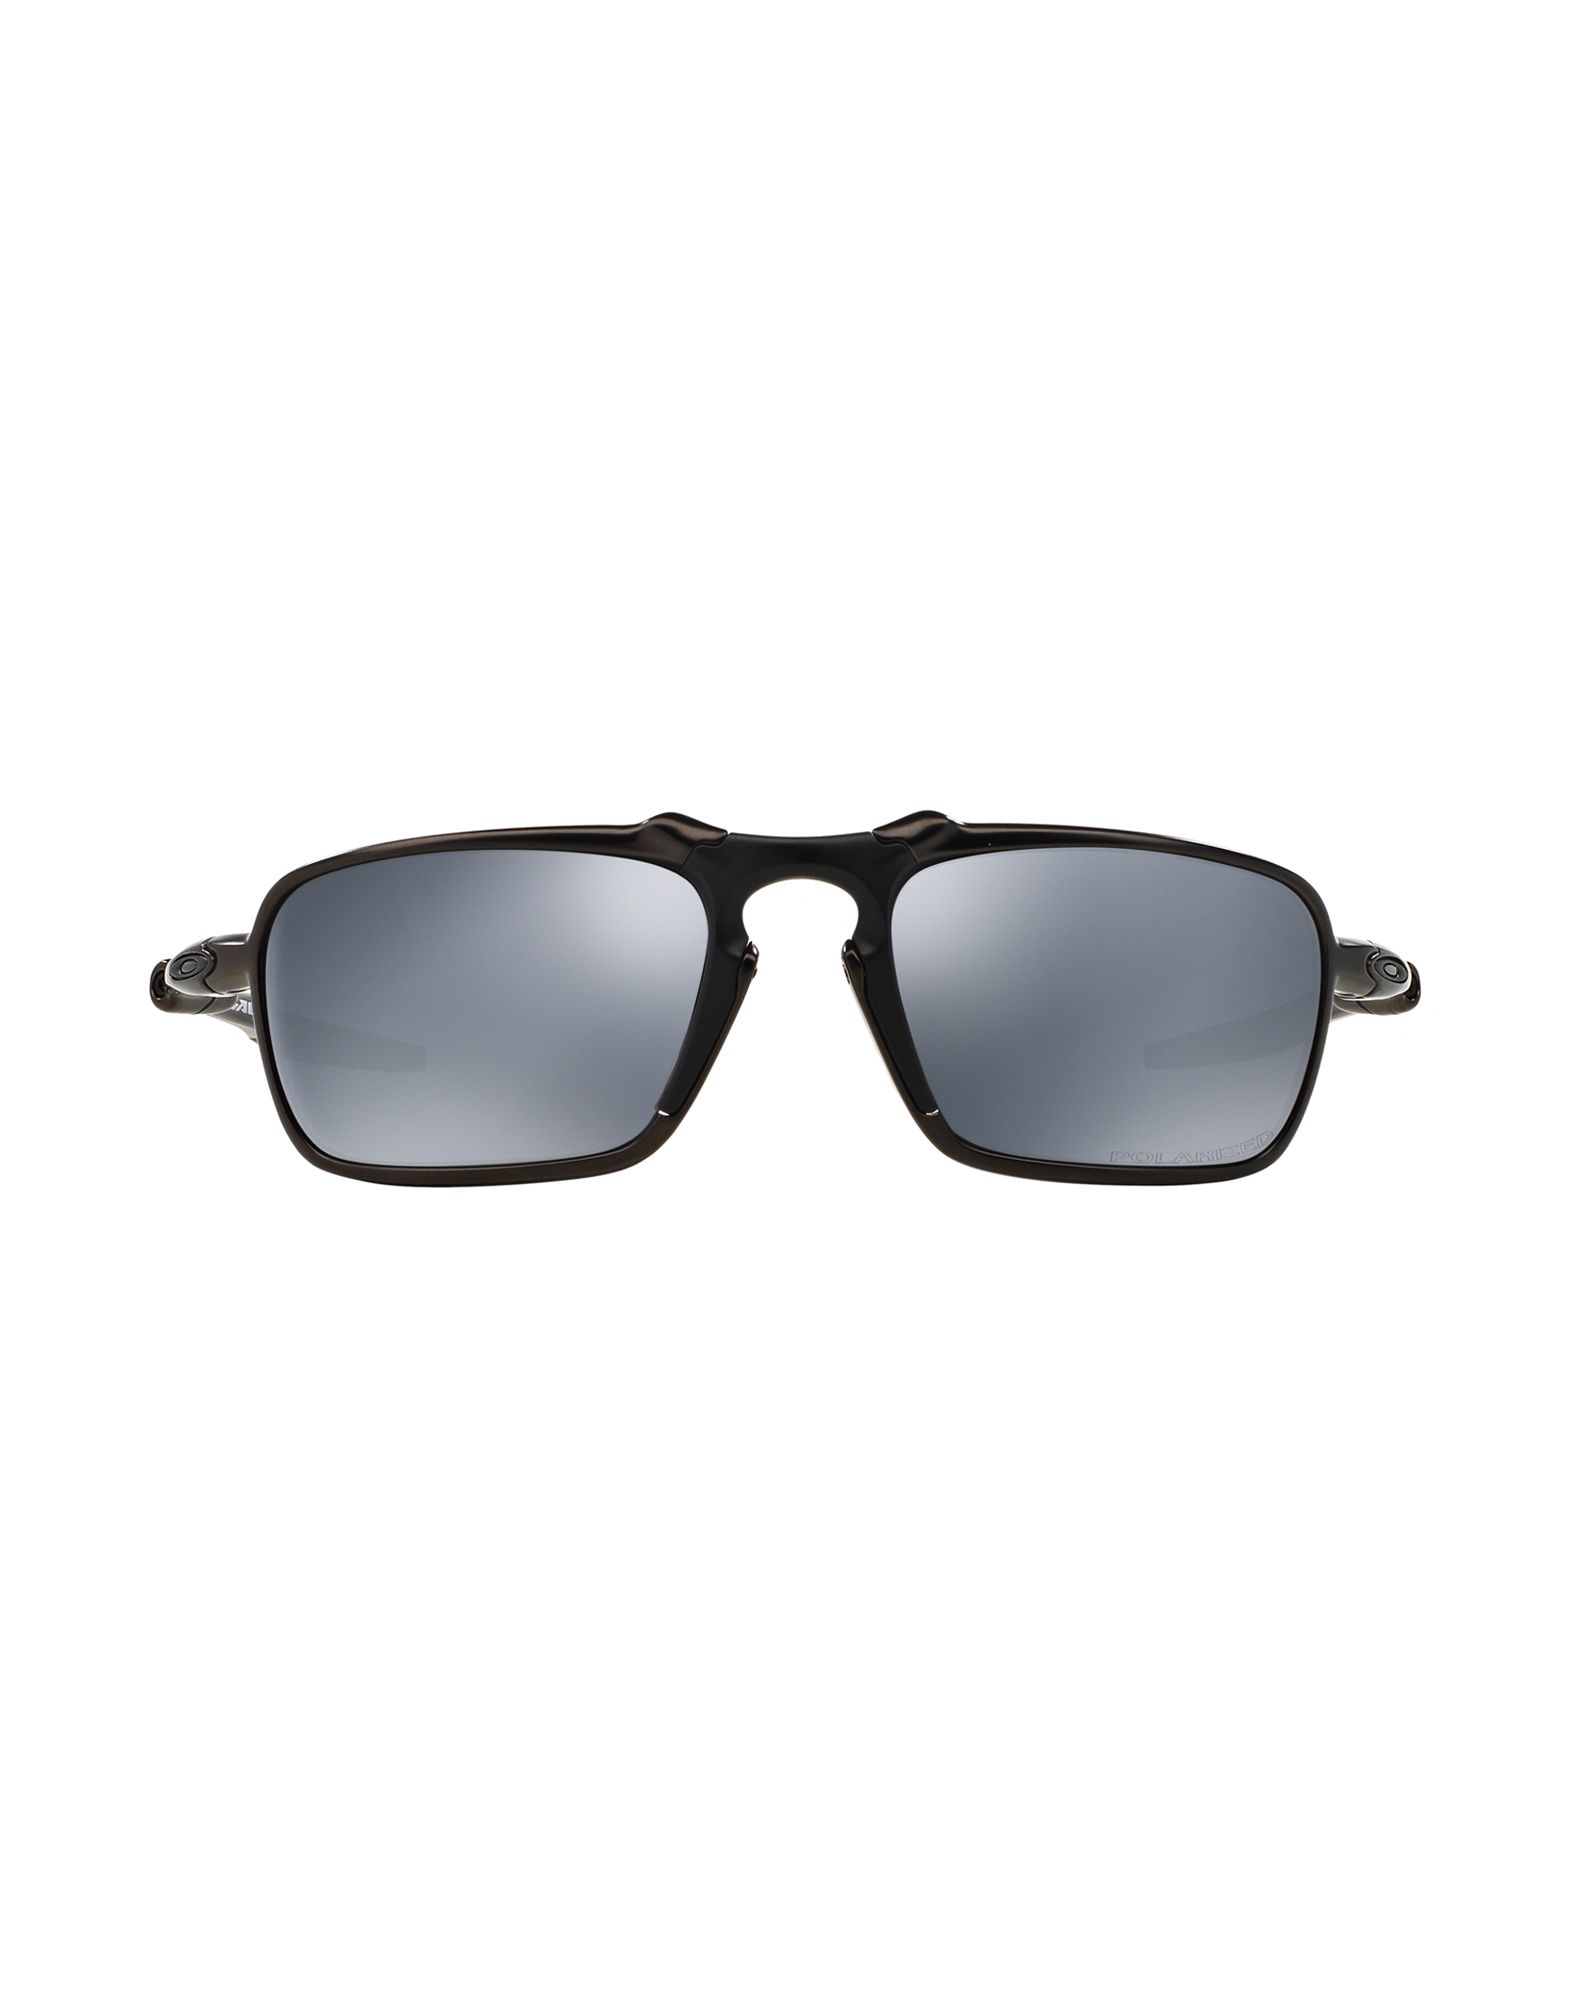 64b55ab364 Oakley Sunglasses Mens Black « Heritage Malta